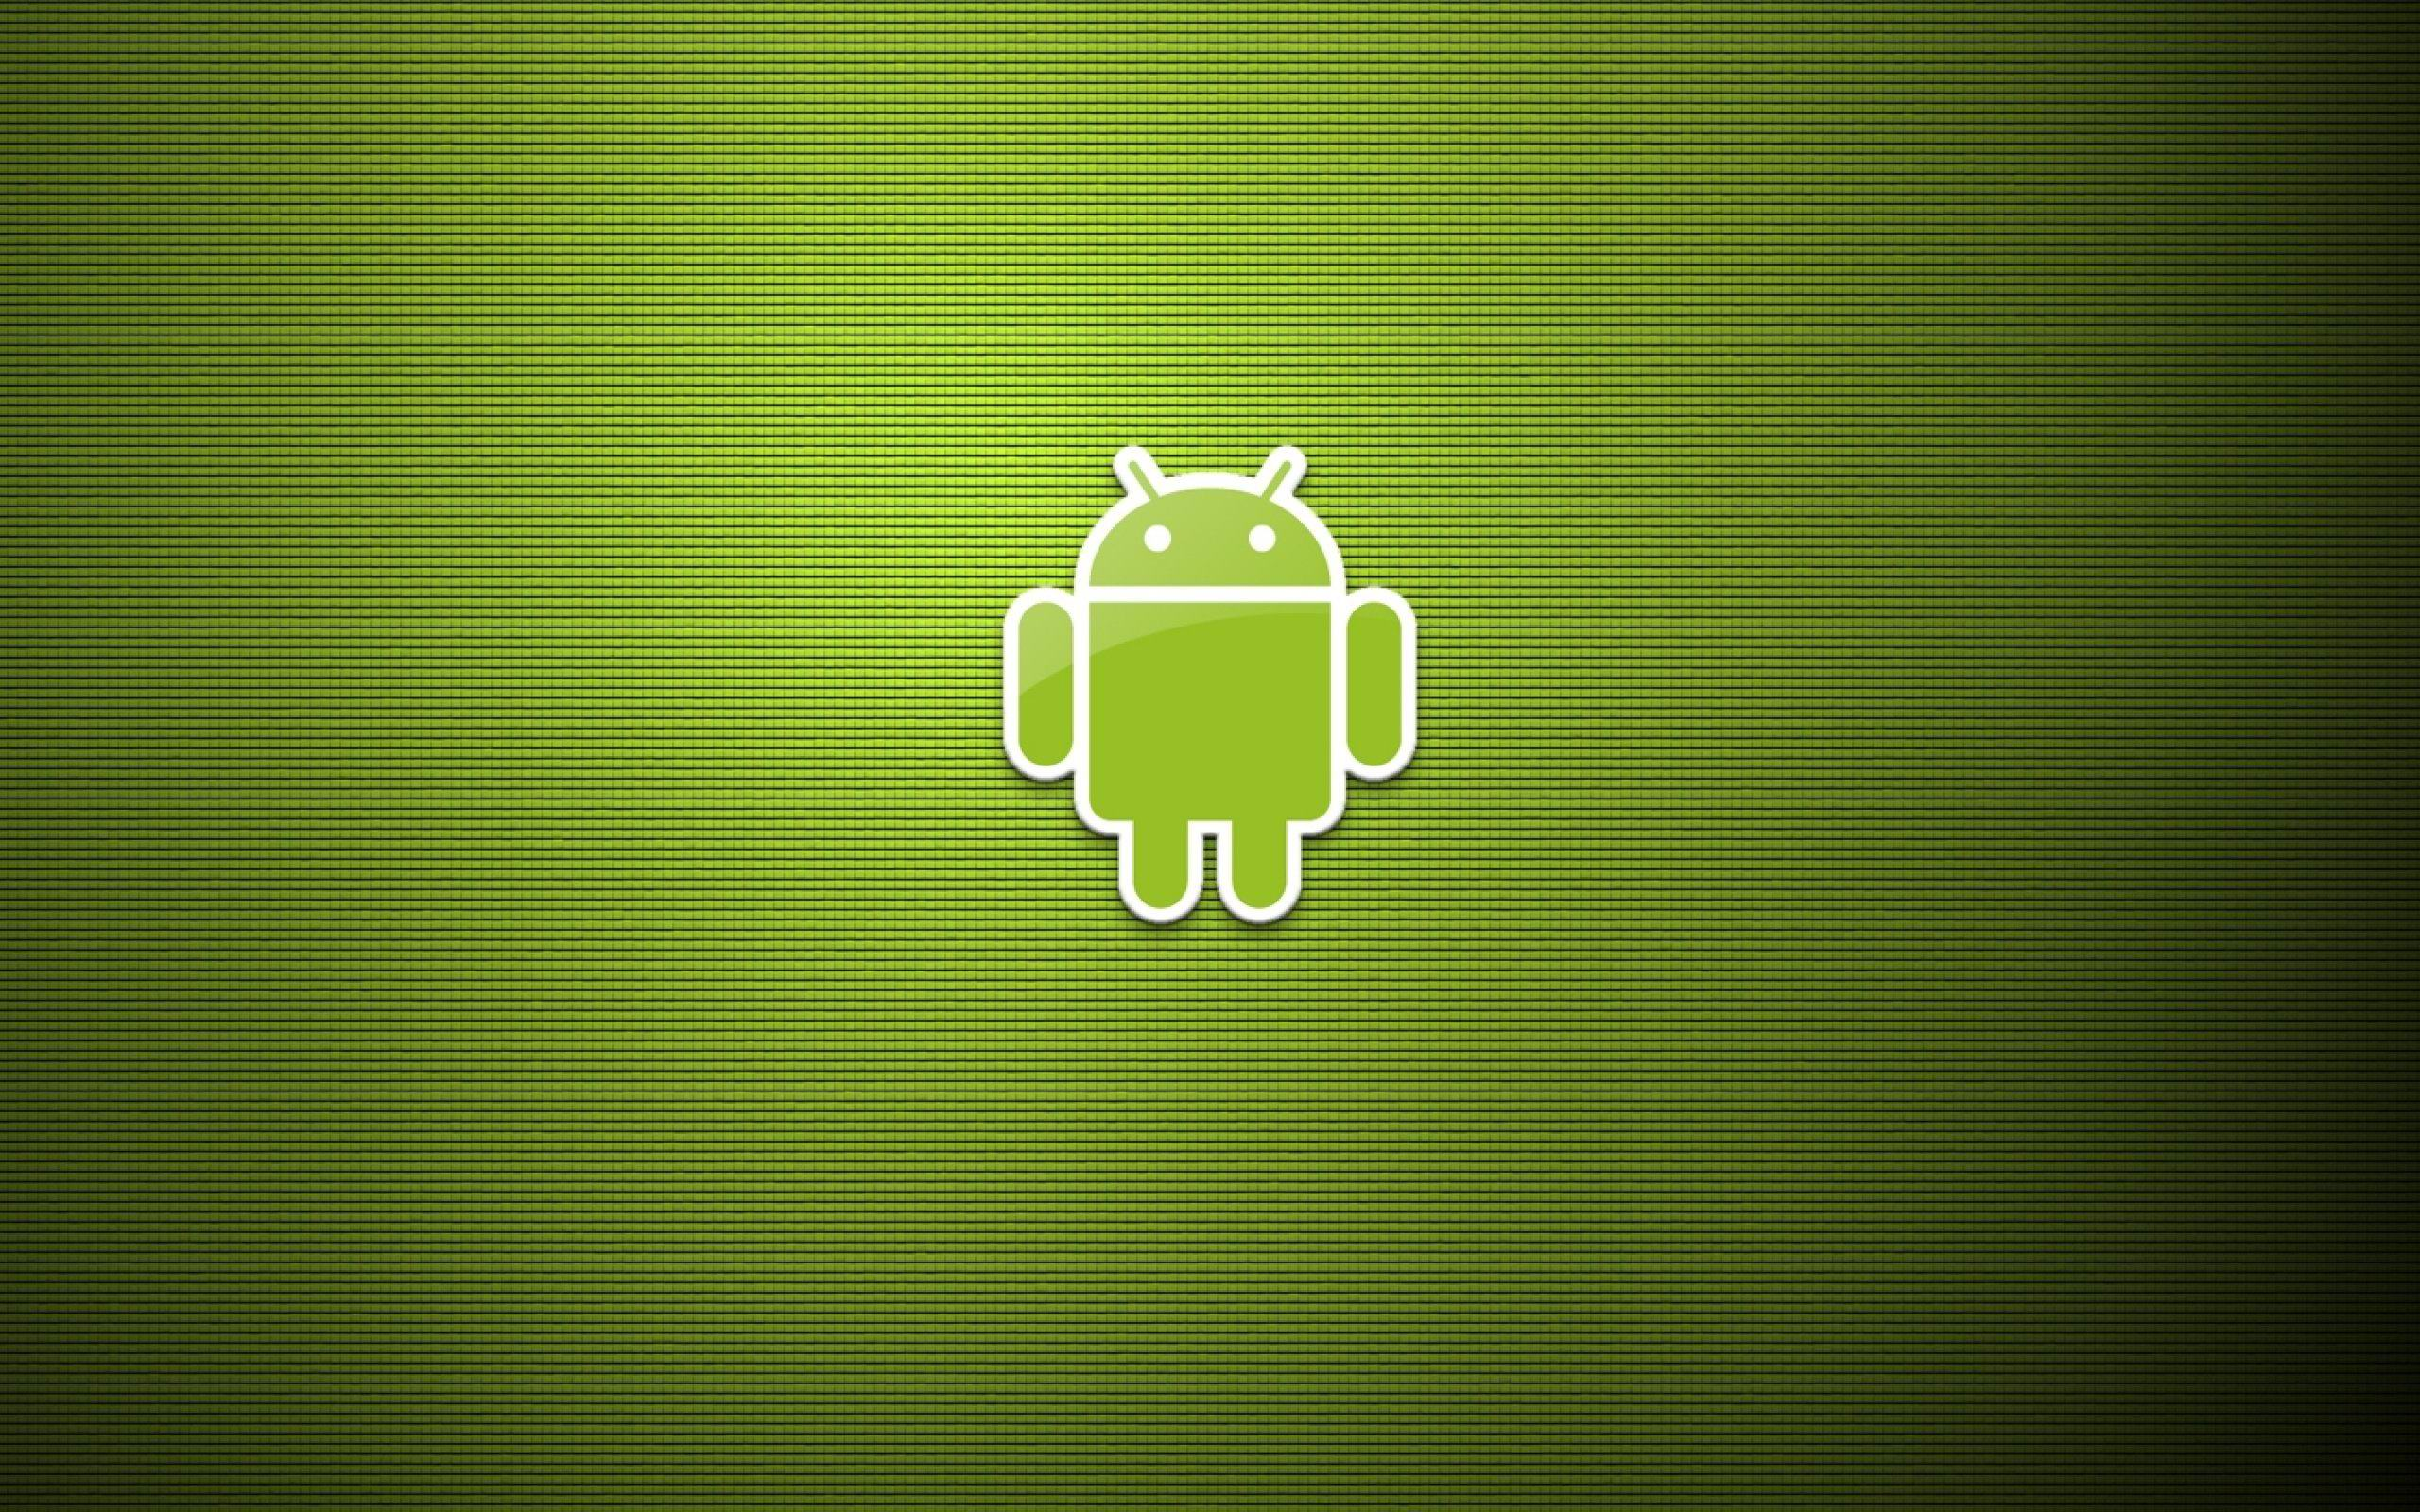 if you are looking for android images today is your lucky day d 2560x1600